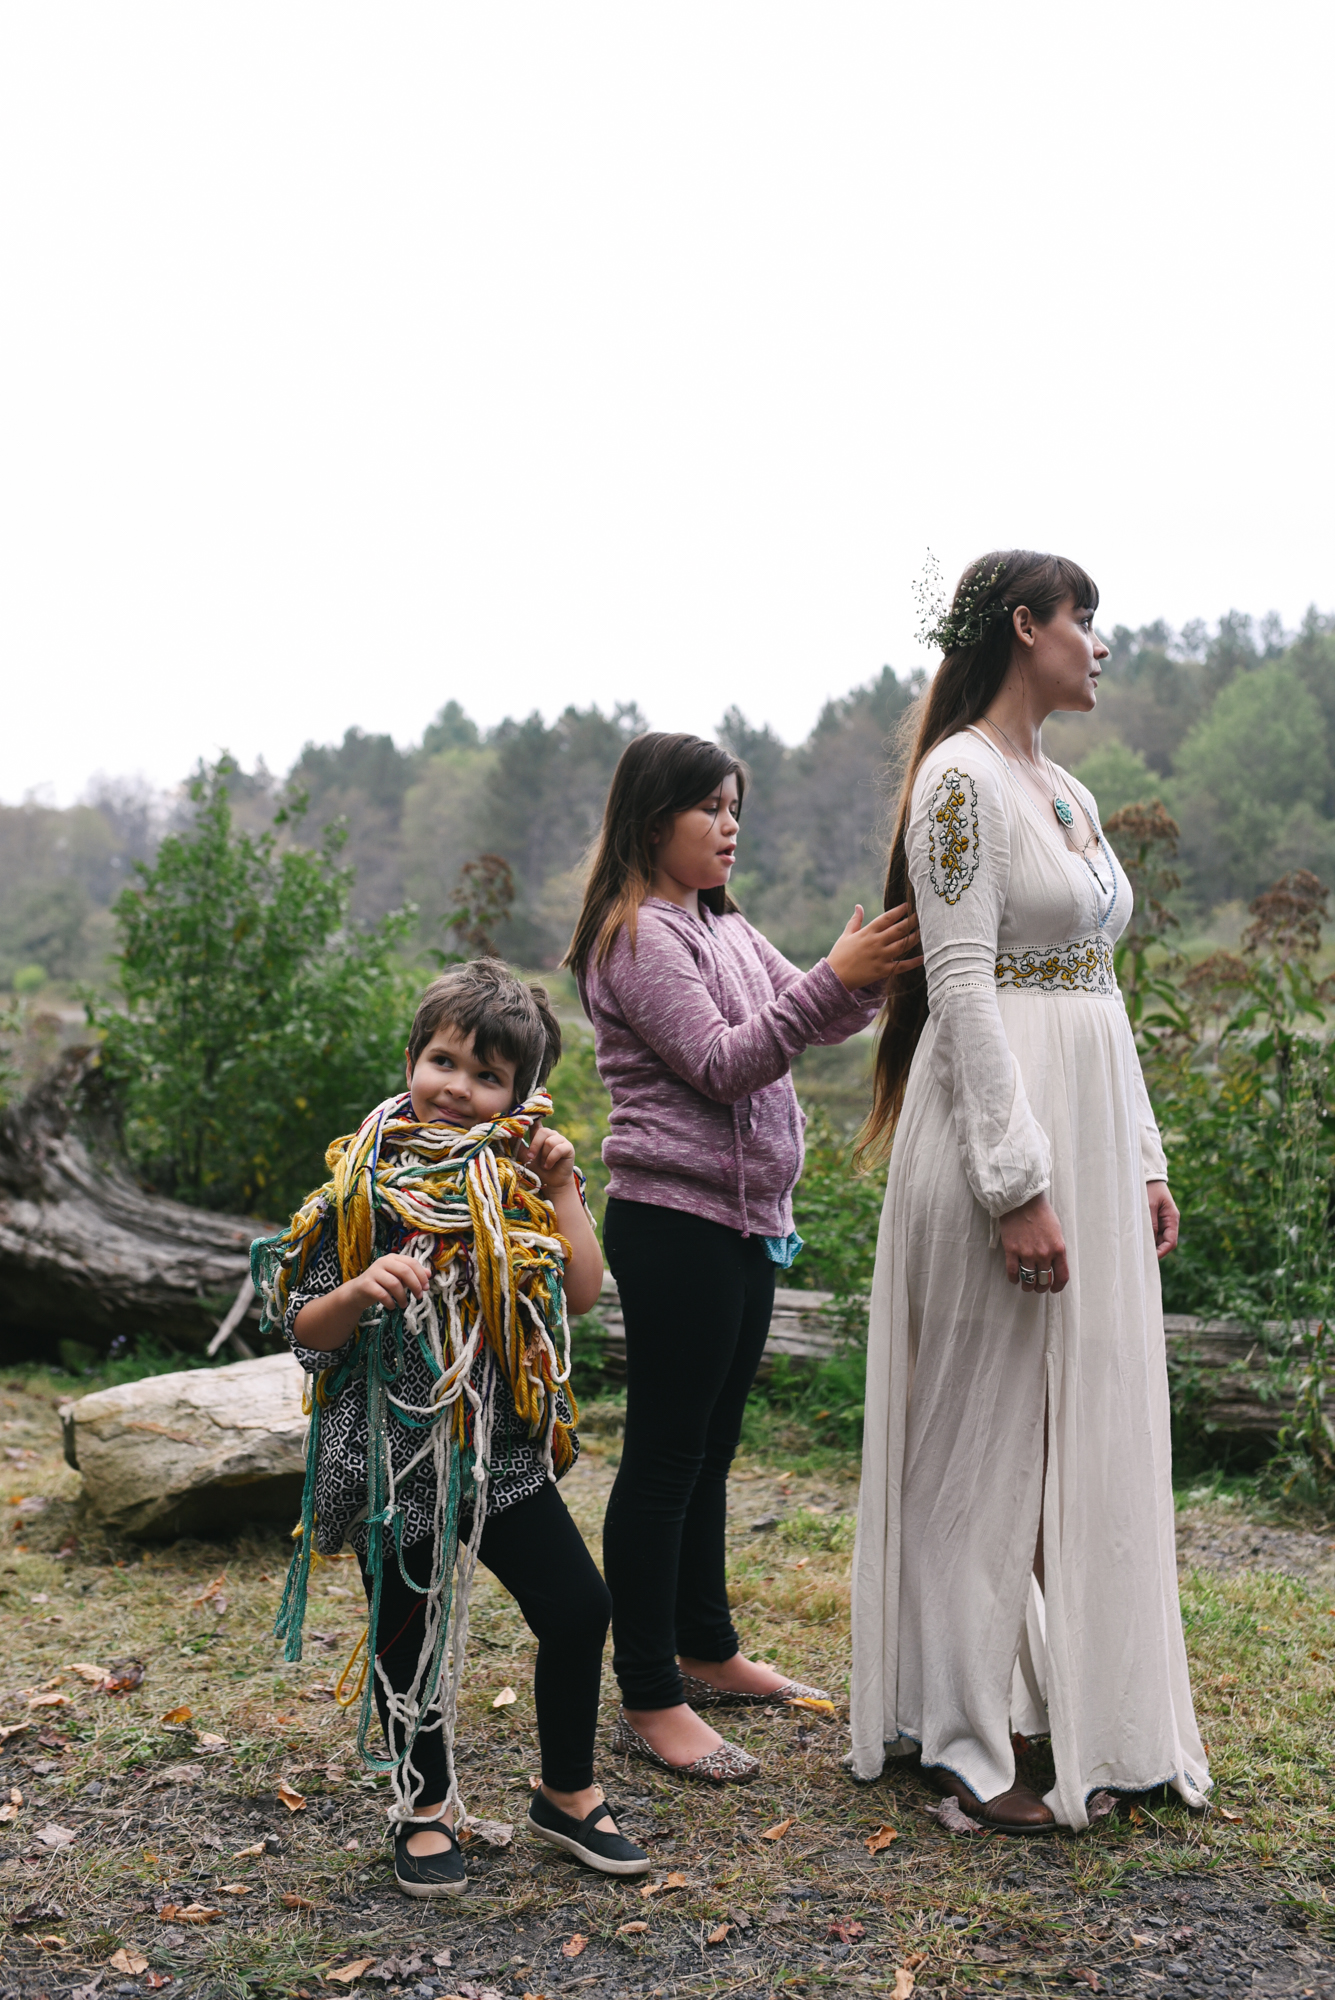 Mountain Wedding, Outdoors, Rustic, West Virginia, Maryland Wedding Photographer, DIY, Casual, Kids playing with bride's hair, embroidered wedding dress, boho